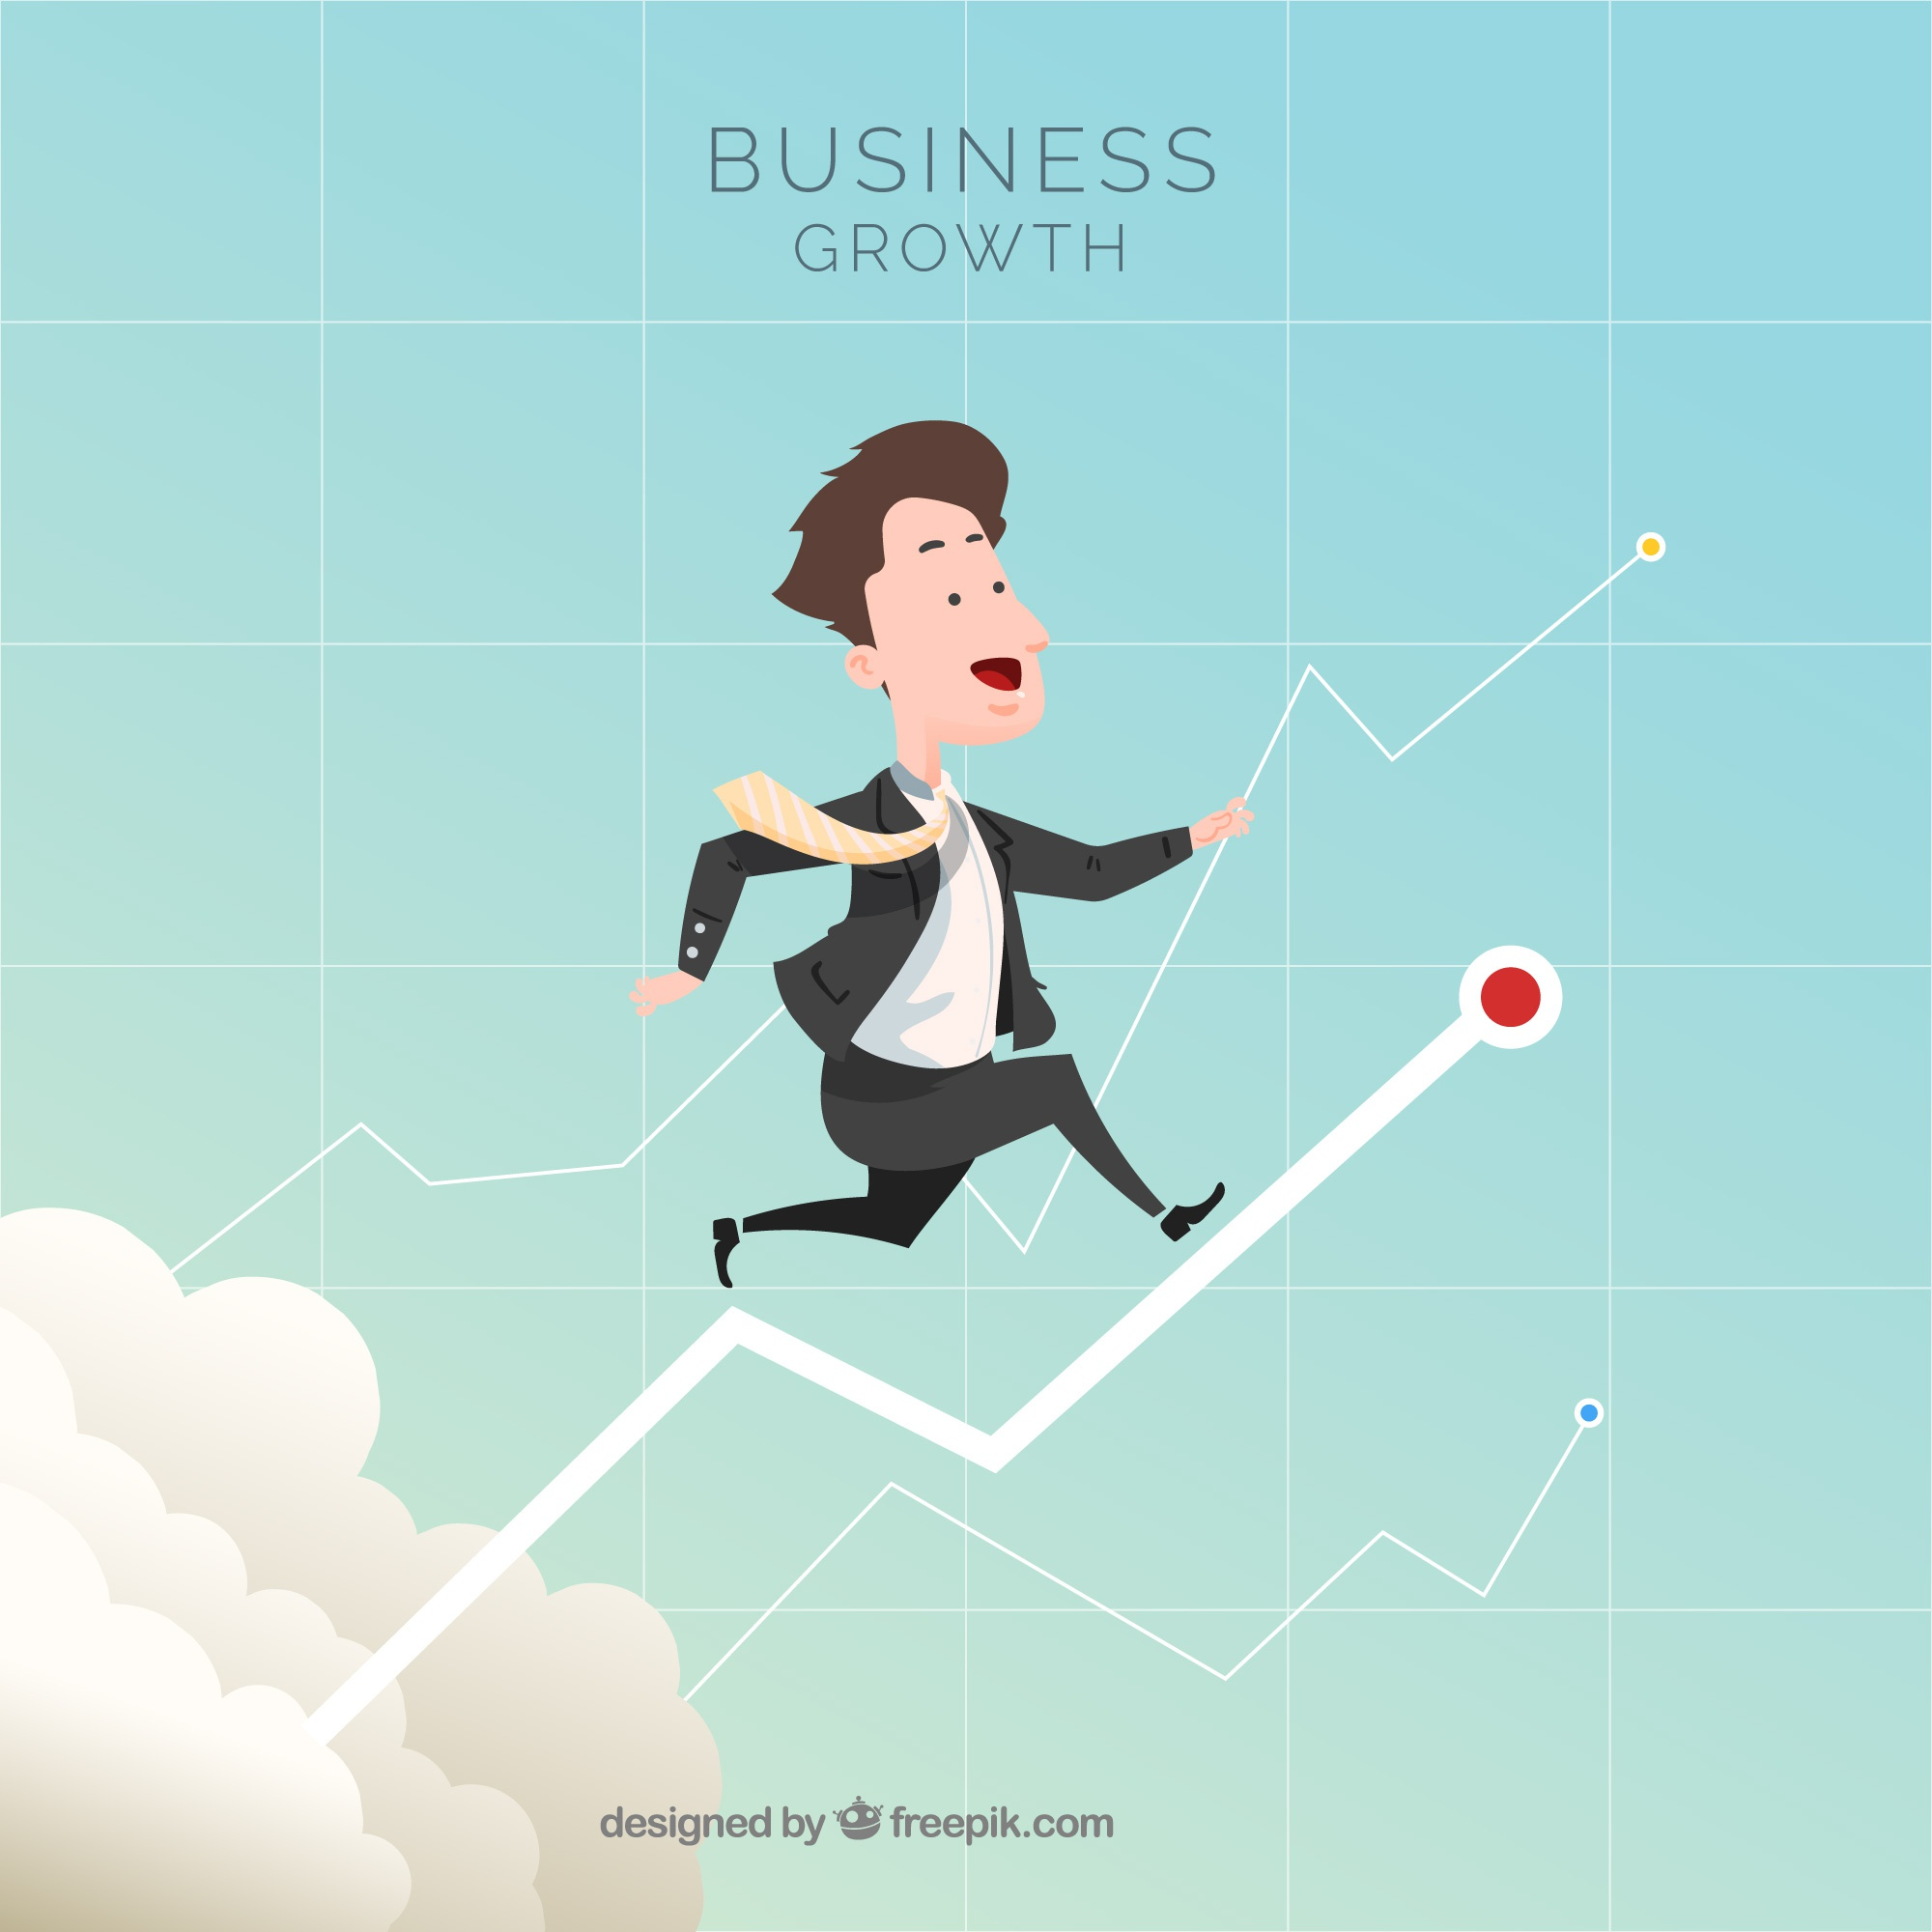 Business growth concept with man in sky